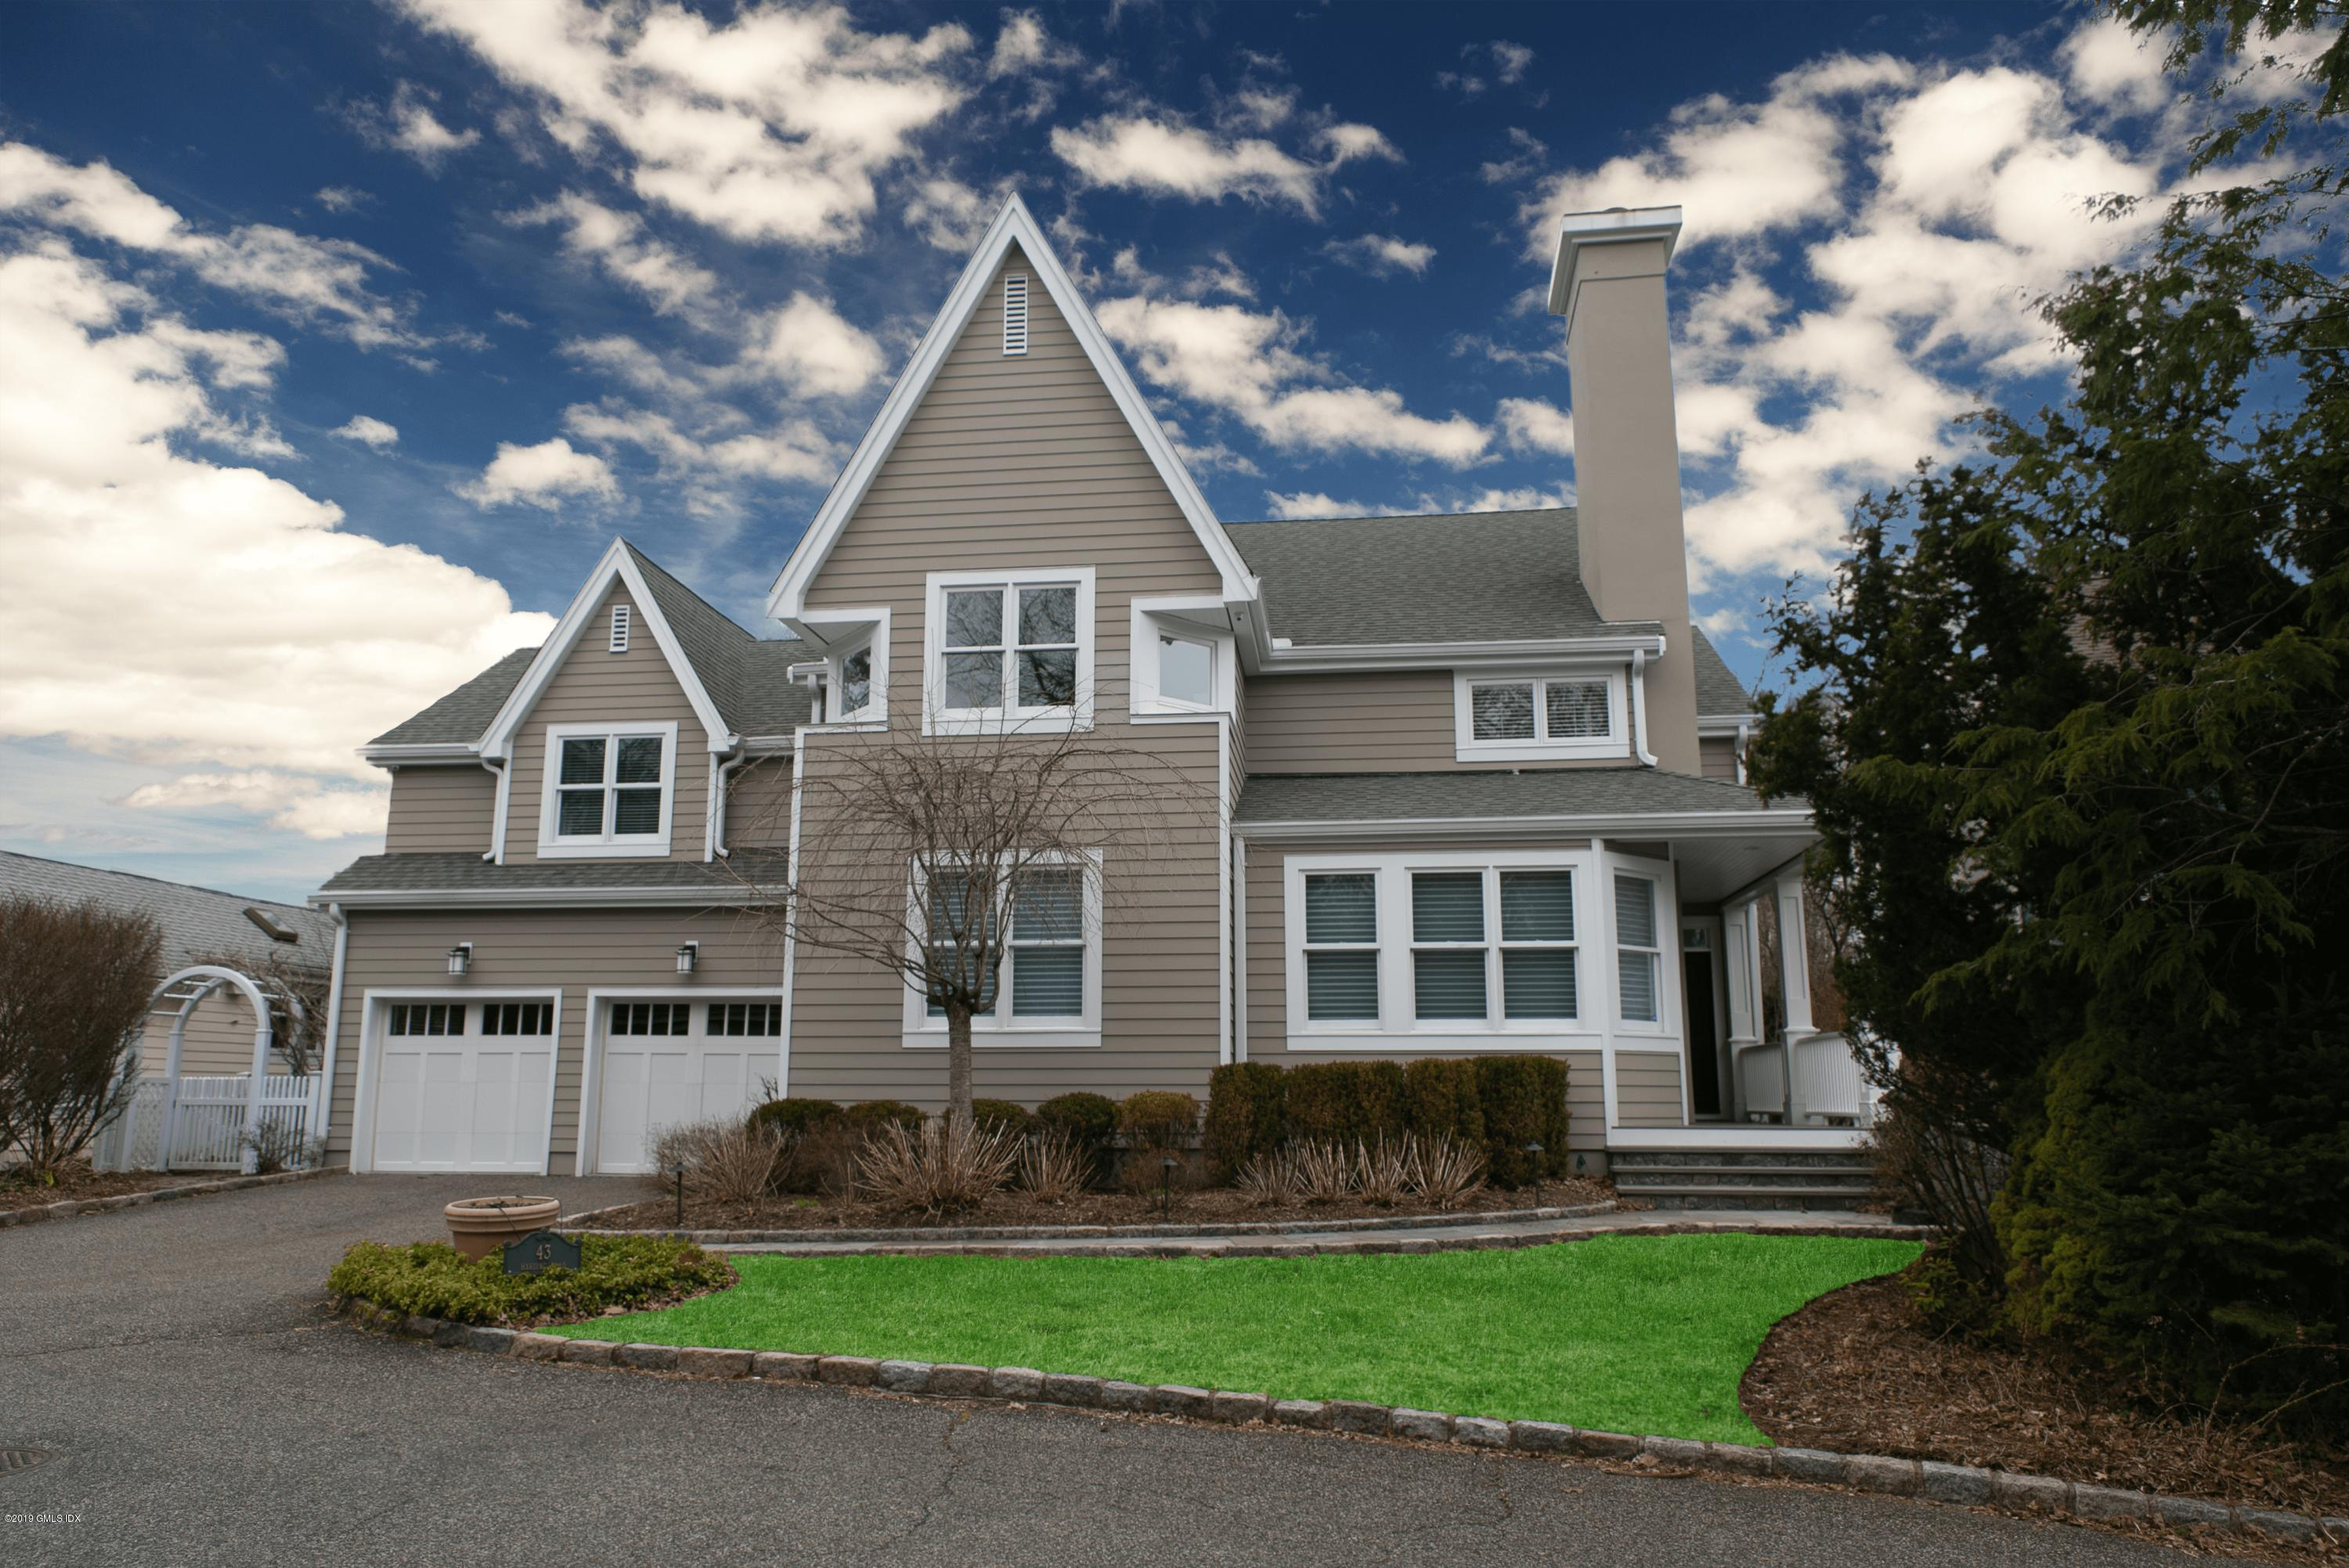 43 Harding Road,Old Greenwich,Connecticut 06870,5 Bedrooms Bedrooms,4 BathroomsBathrooms,Single family,Harding,105310